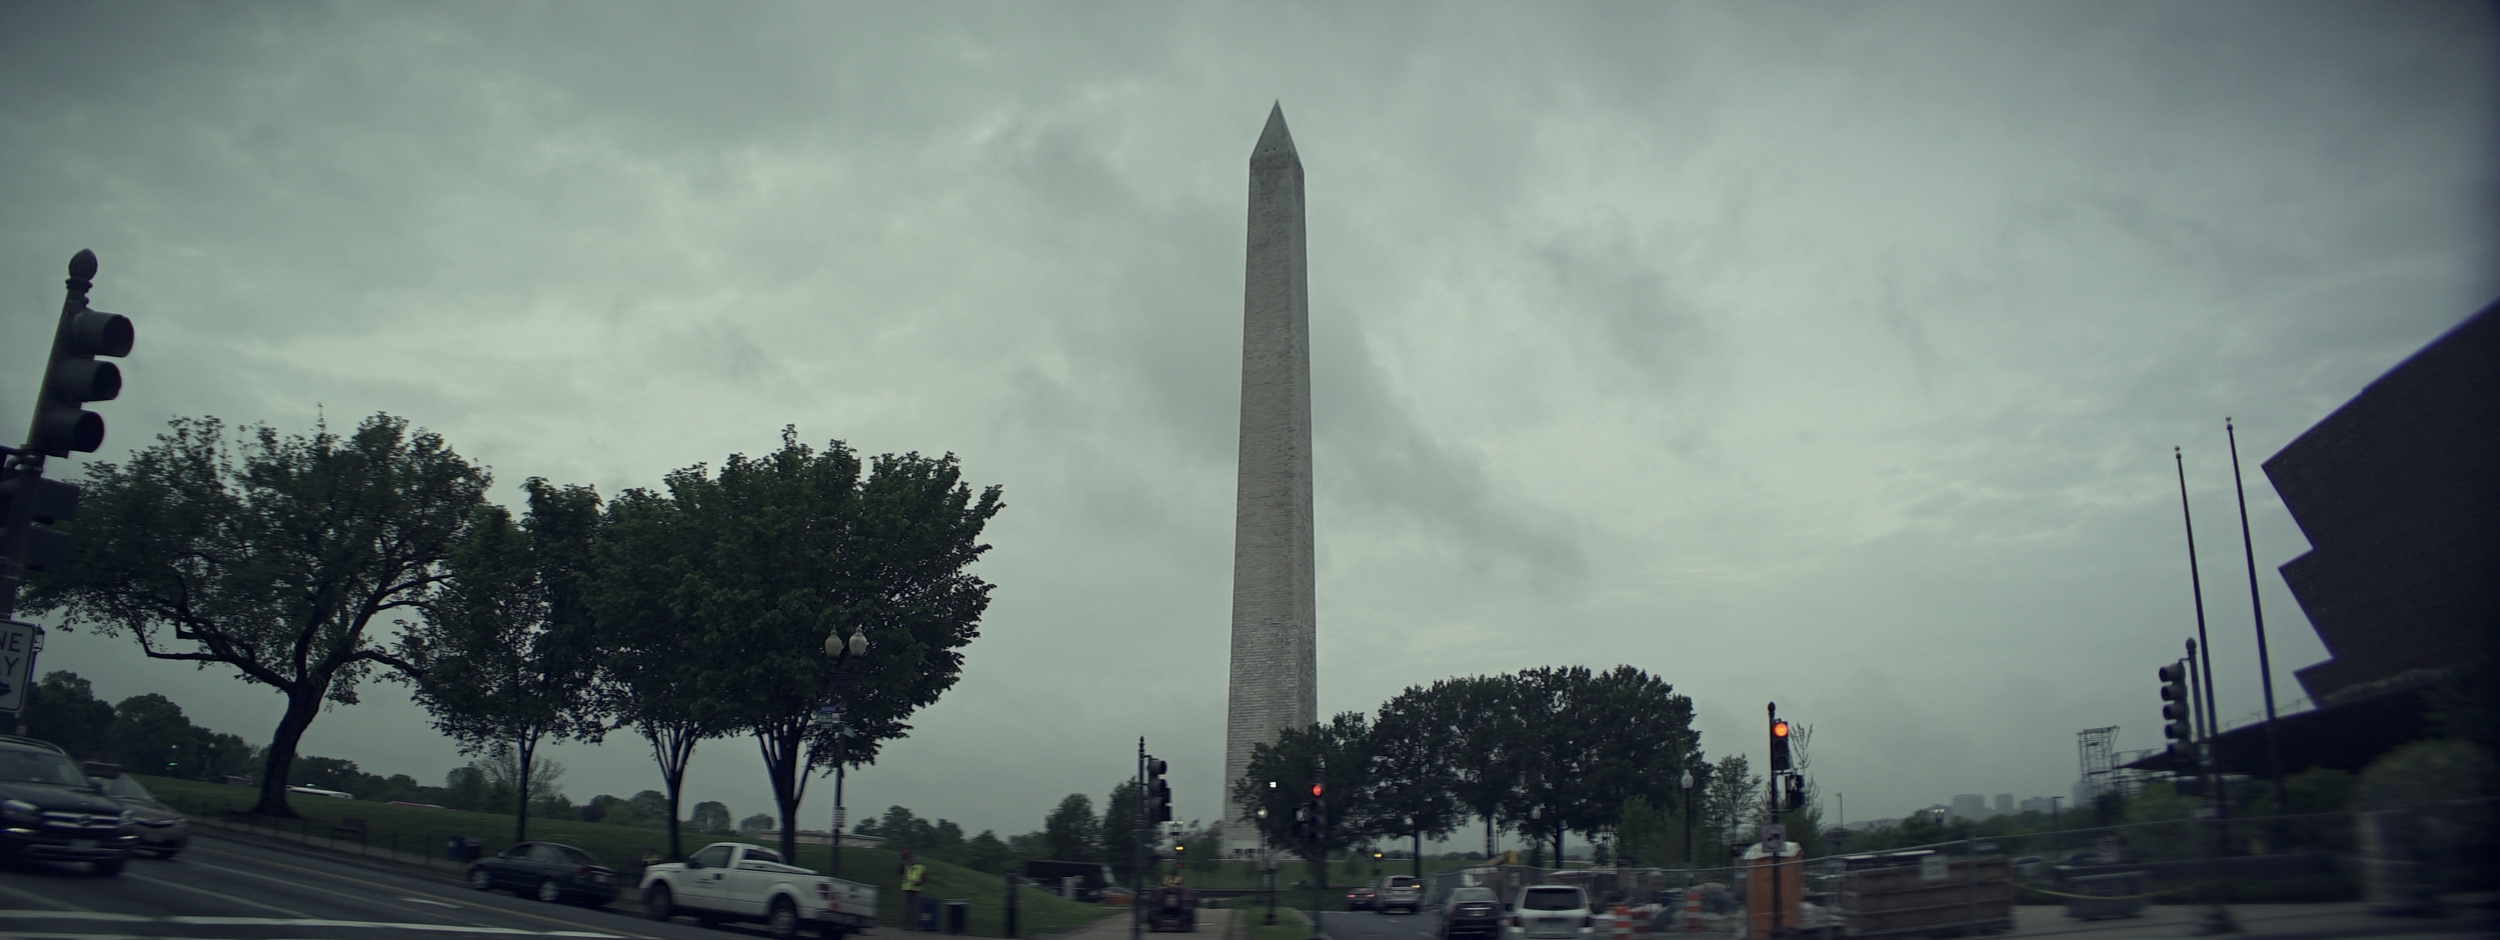 Elite 24.5mm anamorphic | Washington D.C. - Taken from the front windshield of my grip truck. Edge cropped to 2.66:1 . I later slid the image left, to center the Washington Monument - hence the visible vignette frame right. T.2.1. Photo by Keith Nickoson.